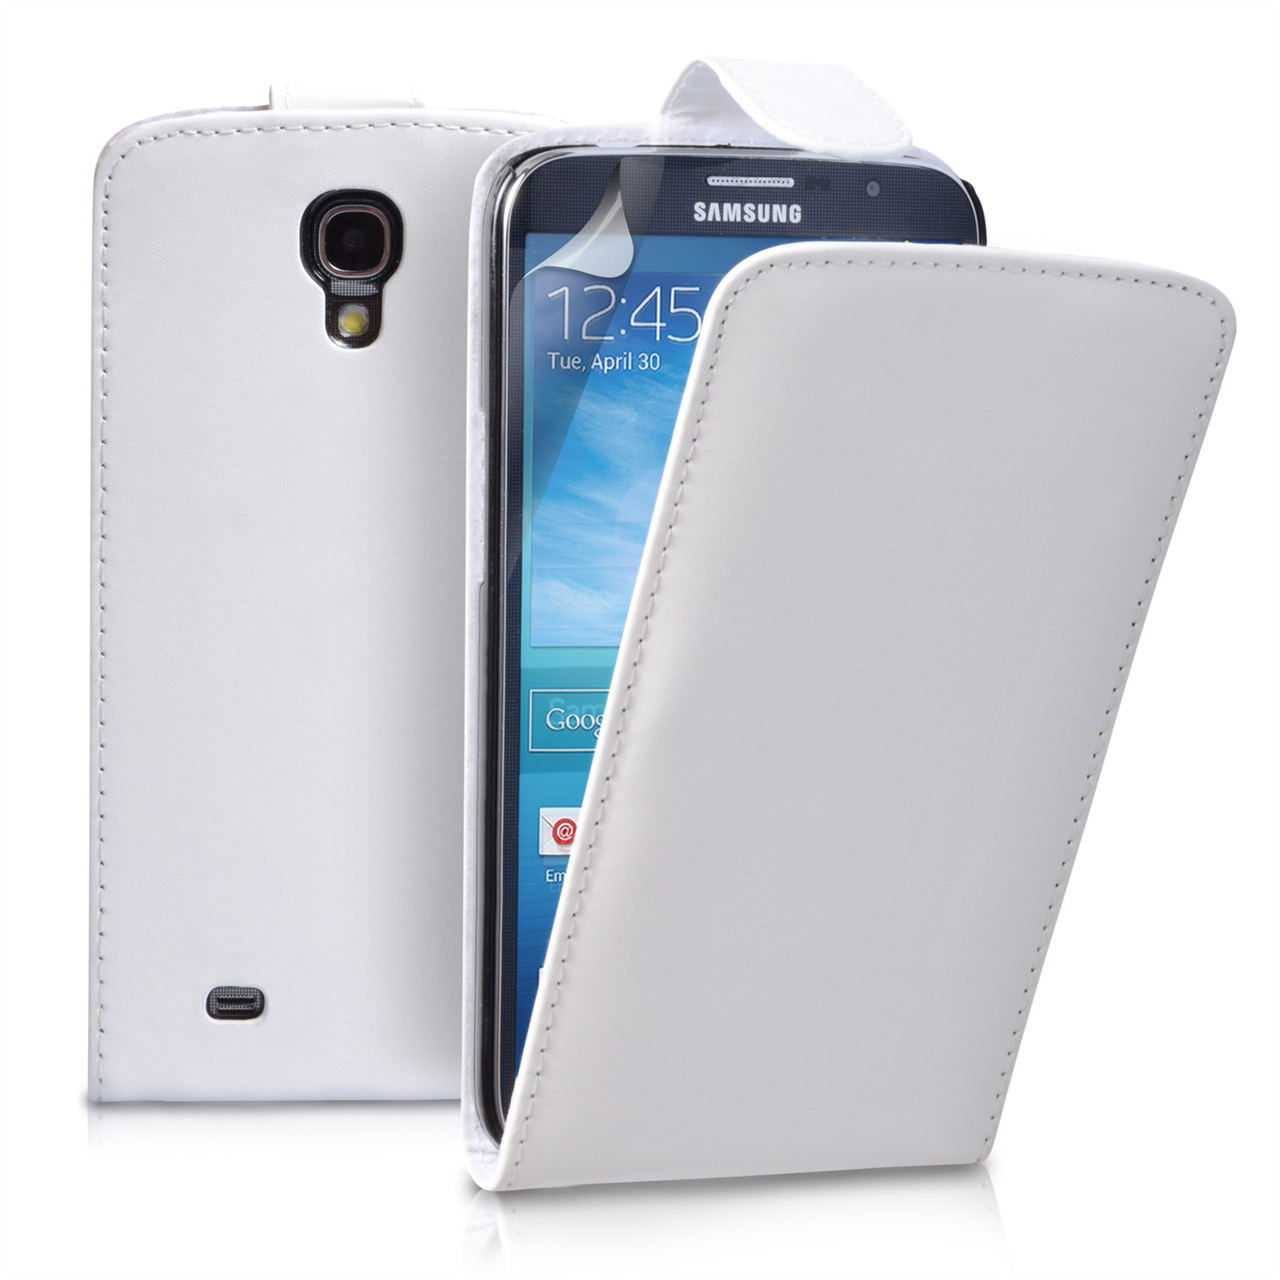 YouSave Samsung Galaxy Mega 6.3 White Leather Effect Flip Case